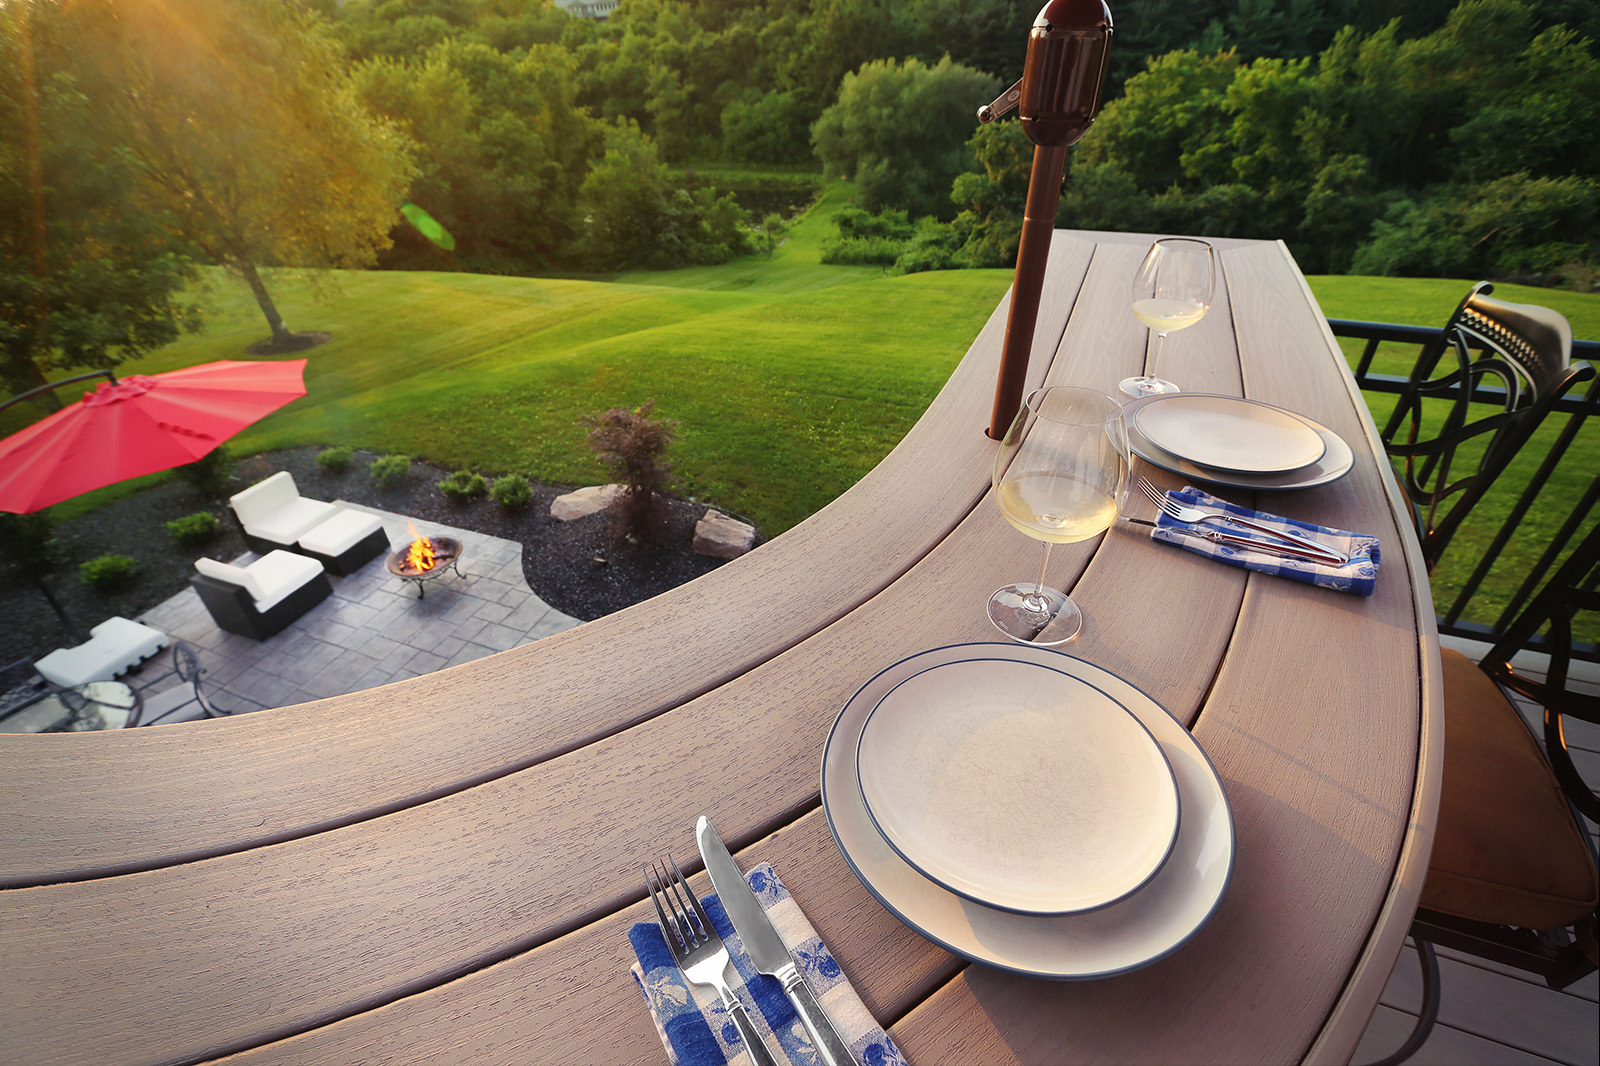 The custom curved railing bar allows friends and family to enjoy a meal or snack, while still being able to take in the gorgeous backyard views.